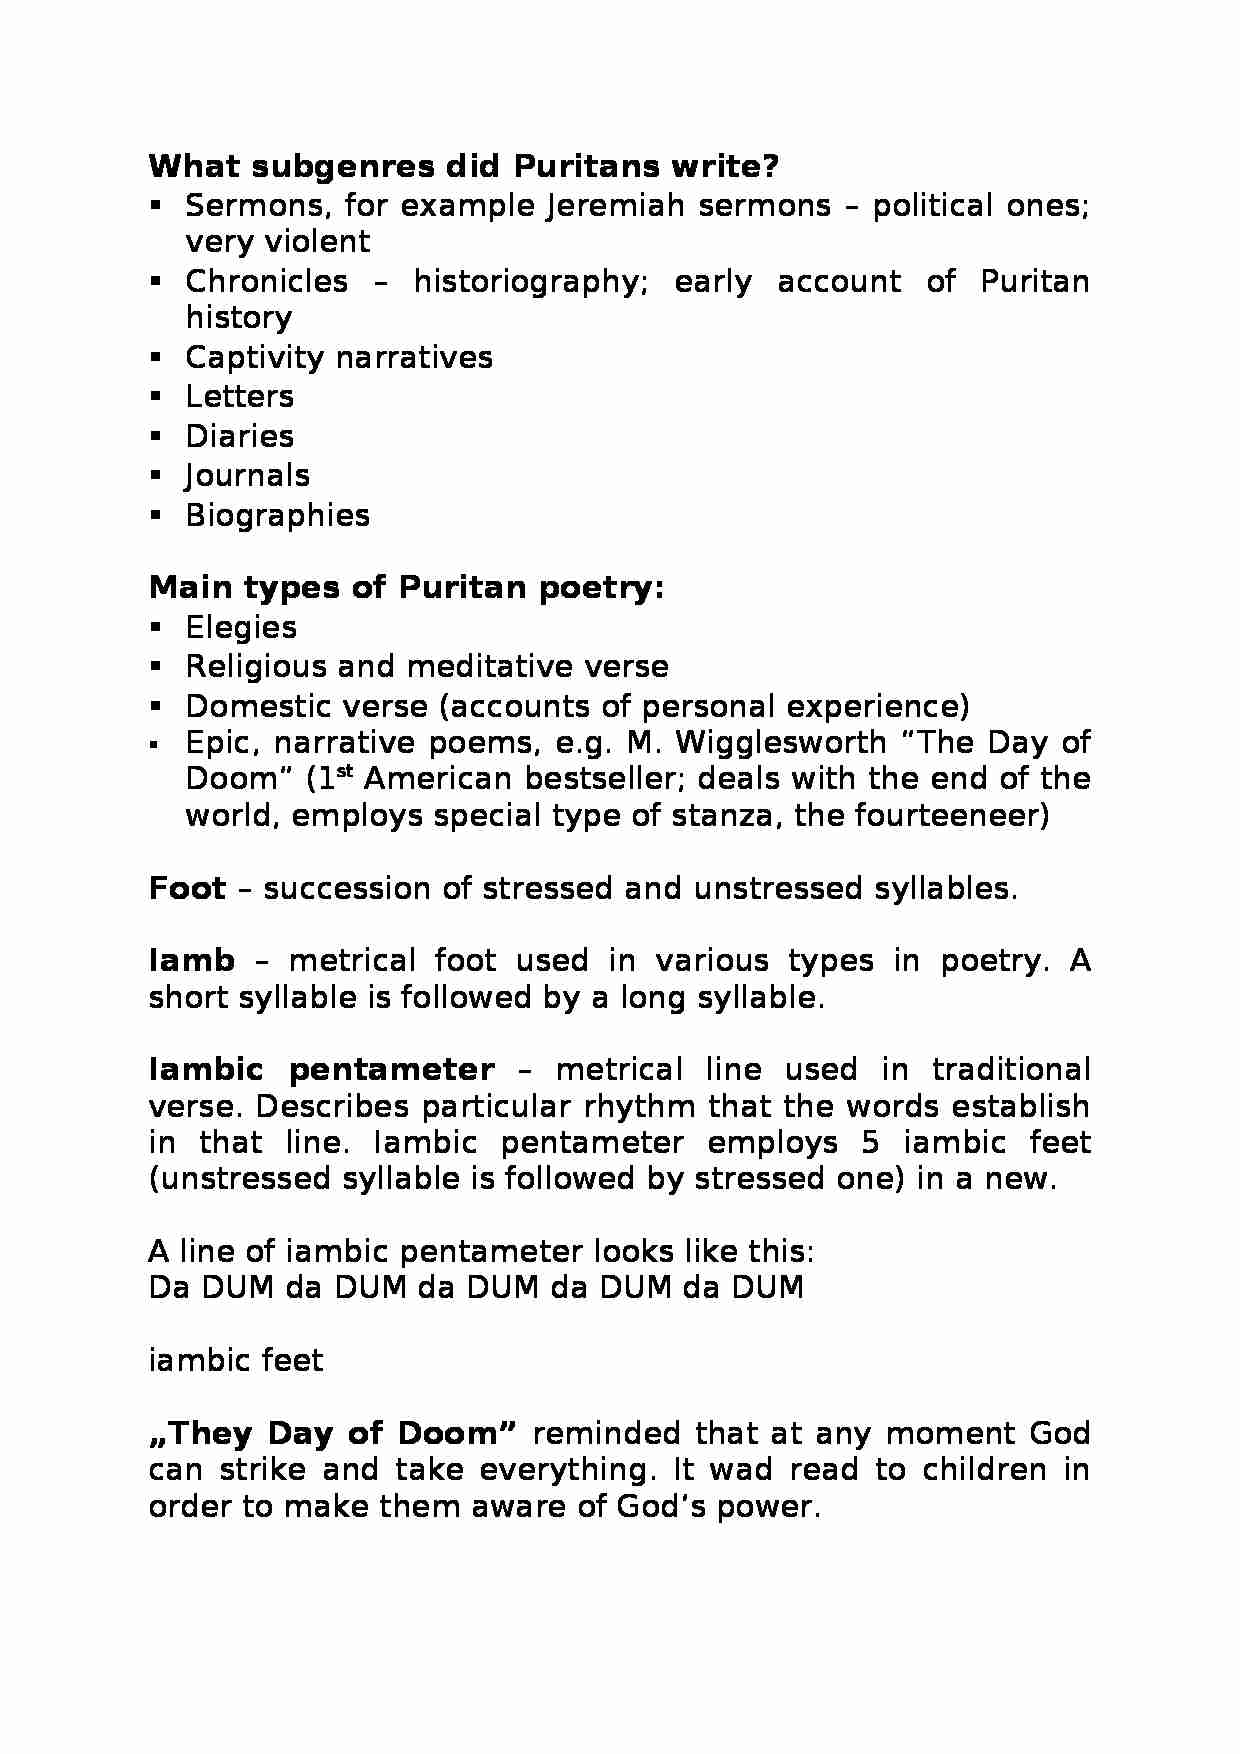 What subgenres did Puritans write-opracowanie - strona 1